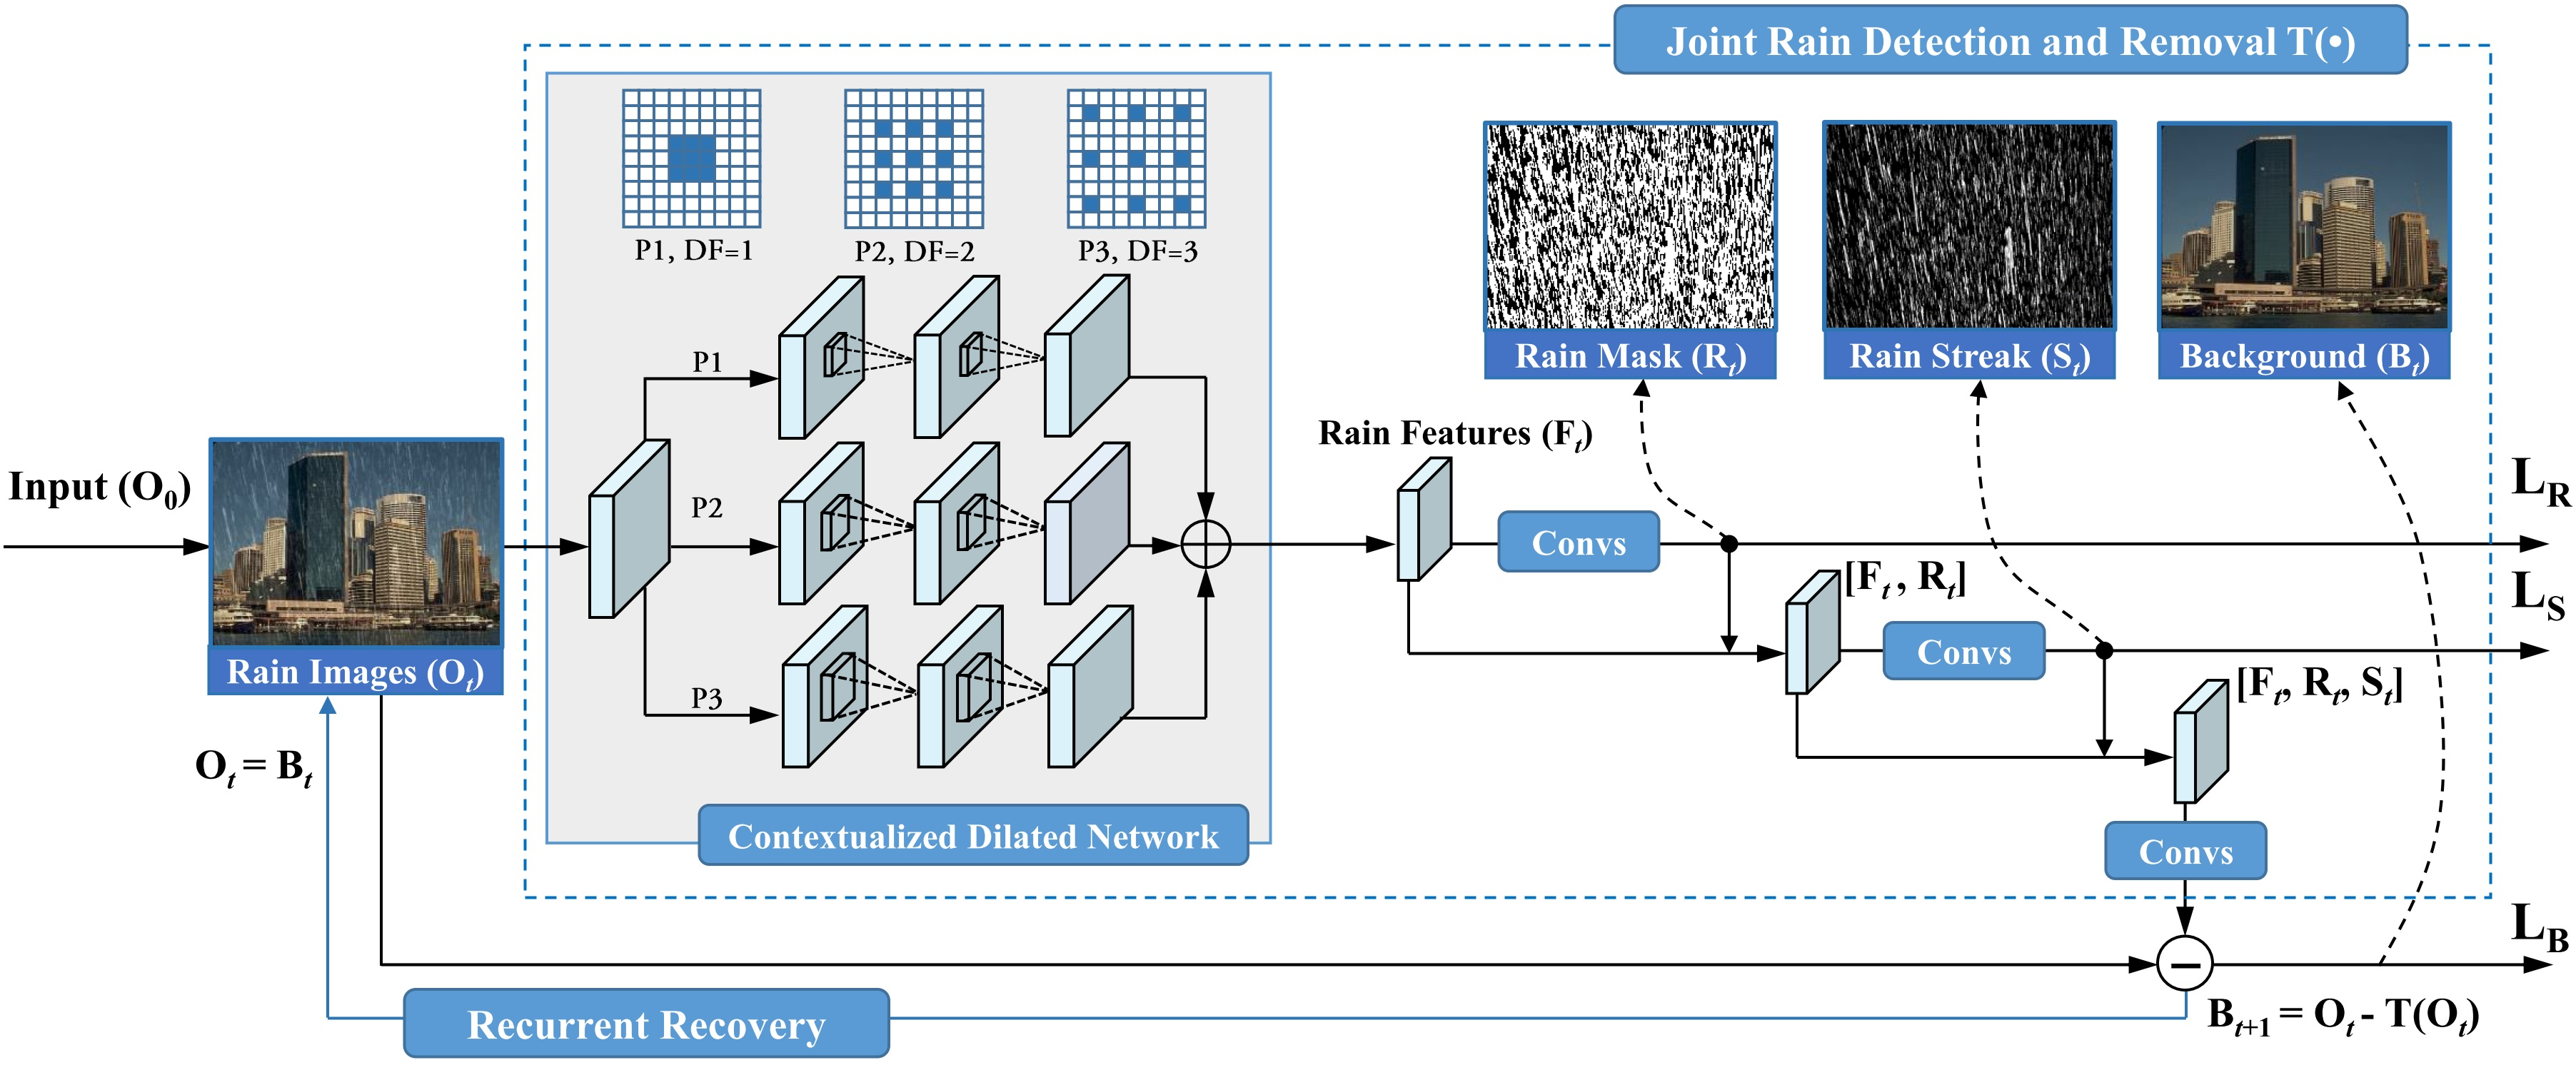 Joint Rain Detection and Removal from a Single Image